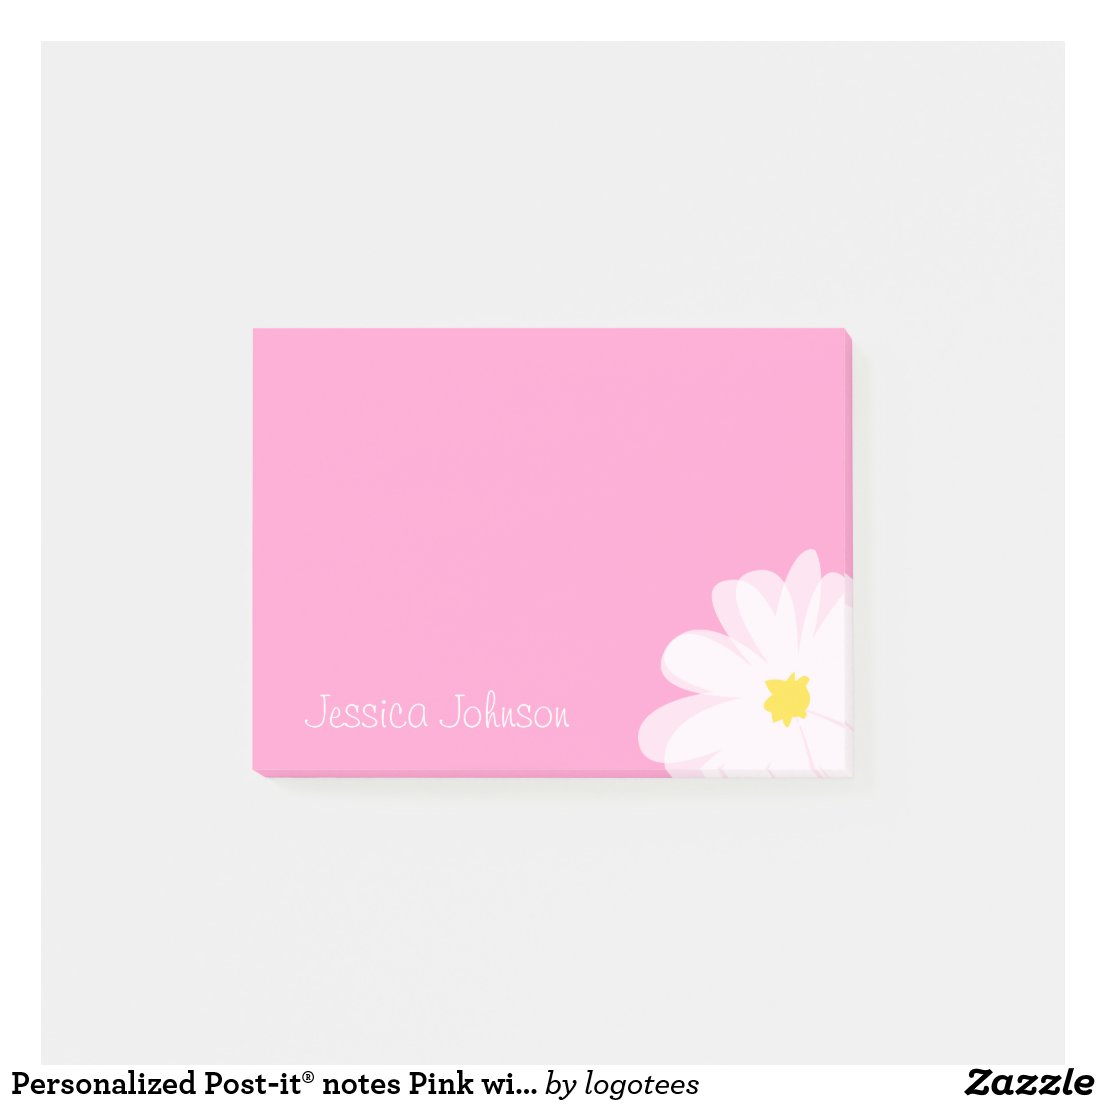 Personalised Post-it notes | Pink with daisy flow